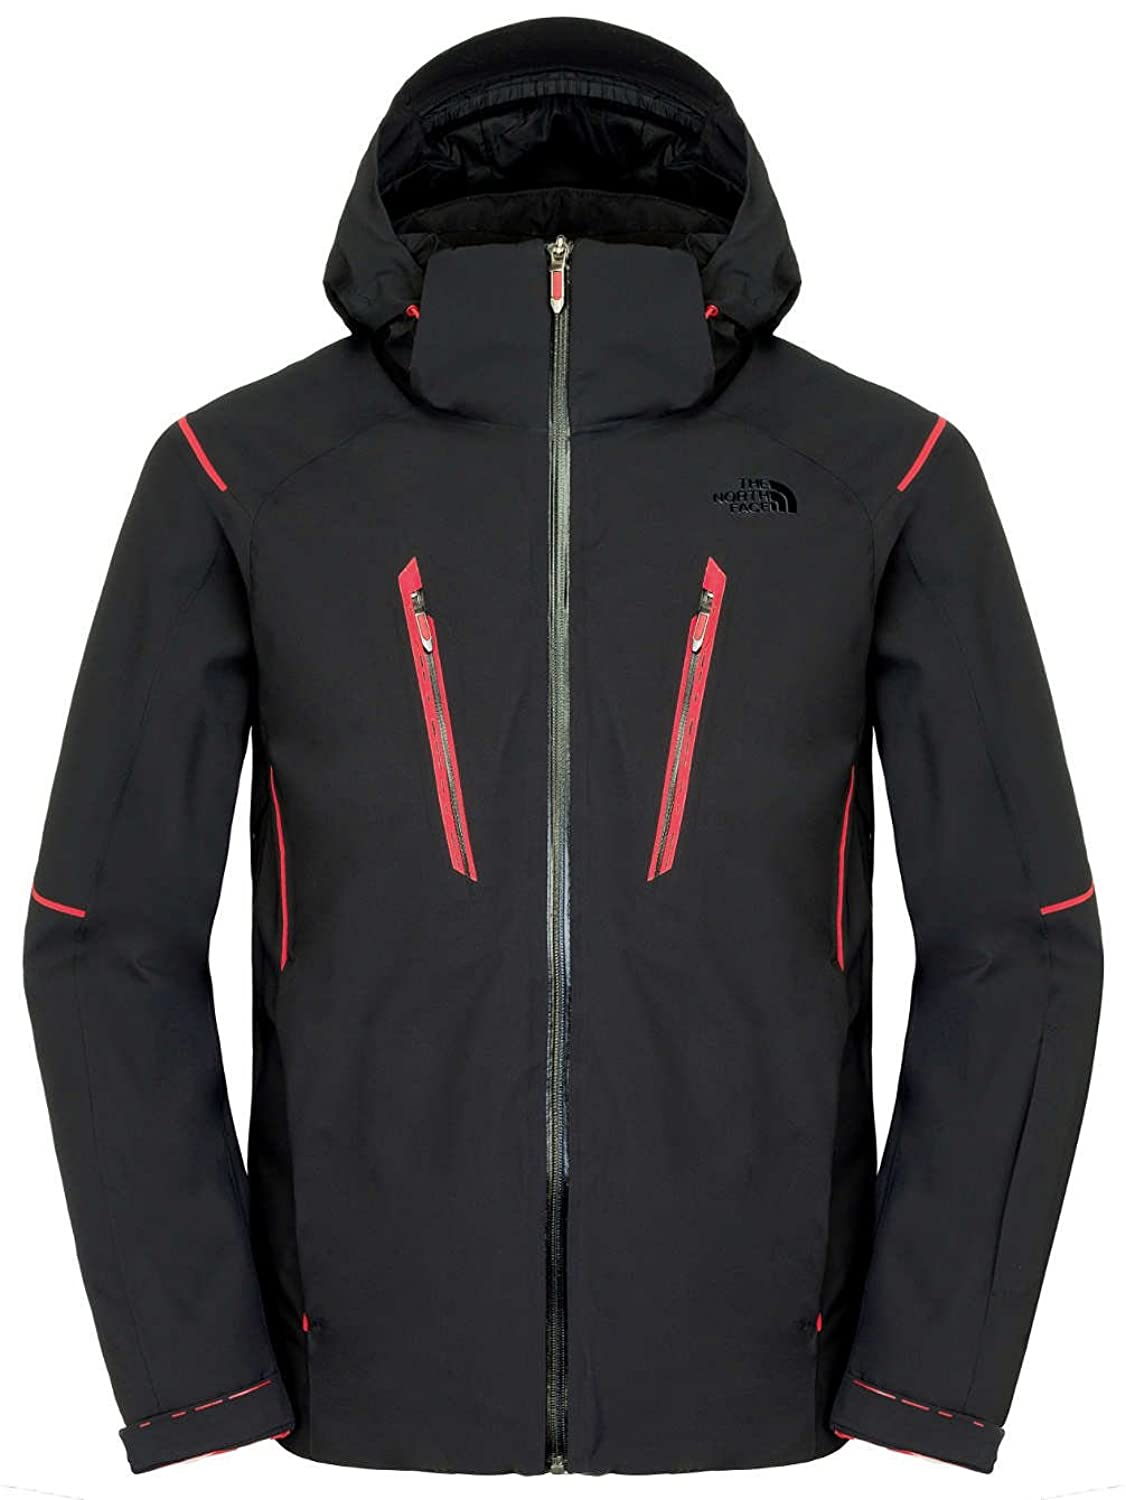 Herren Snowboard Jacke The North Face Kempinski Jacket bestellen